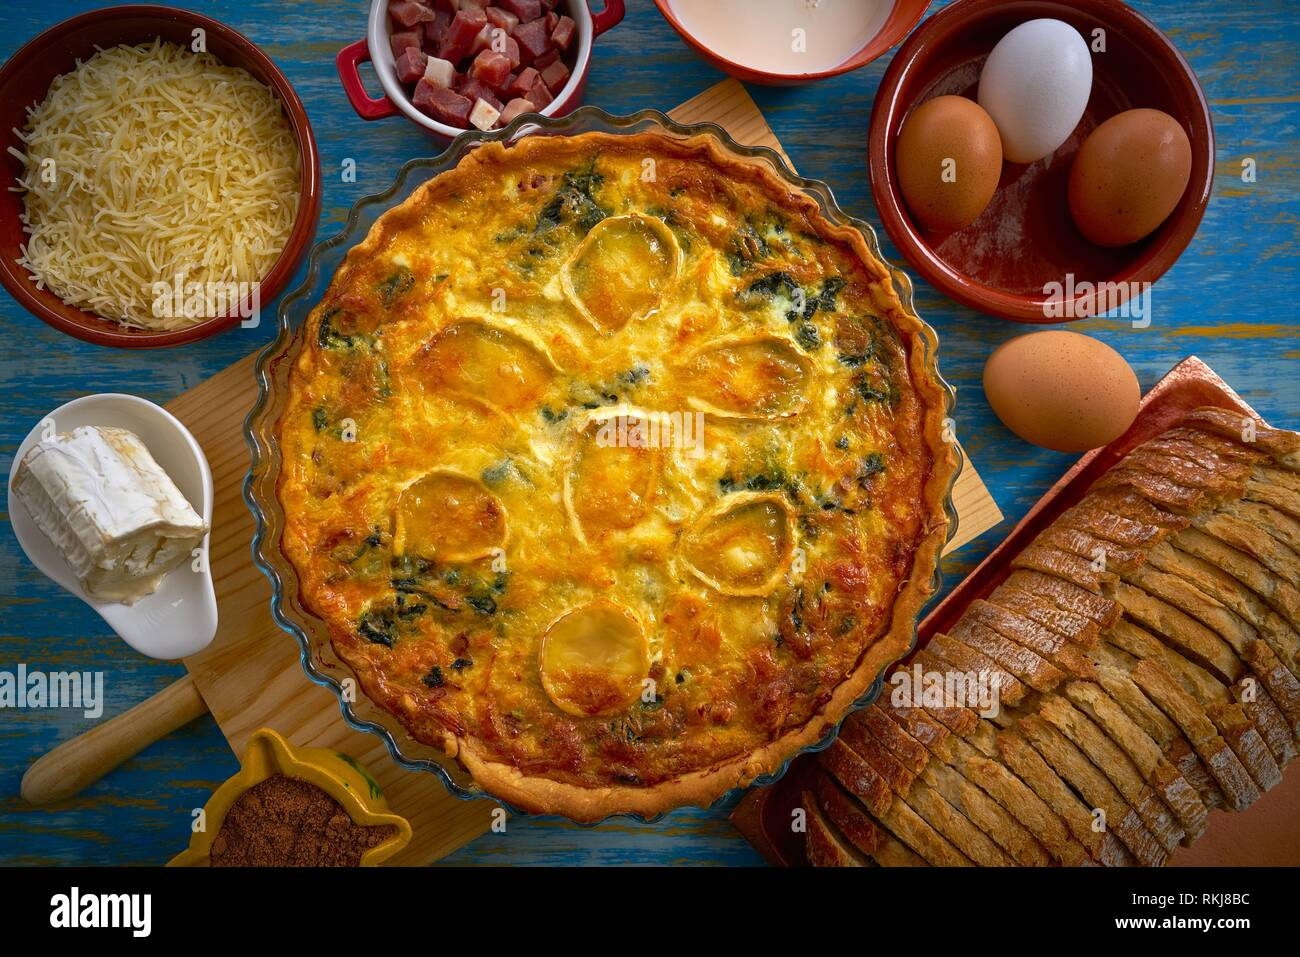 Quiche recipe with spinach and goats cheese on blue table. - Stock Image